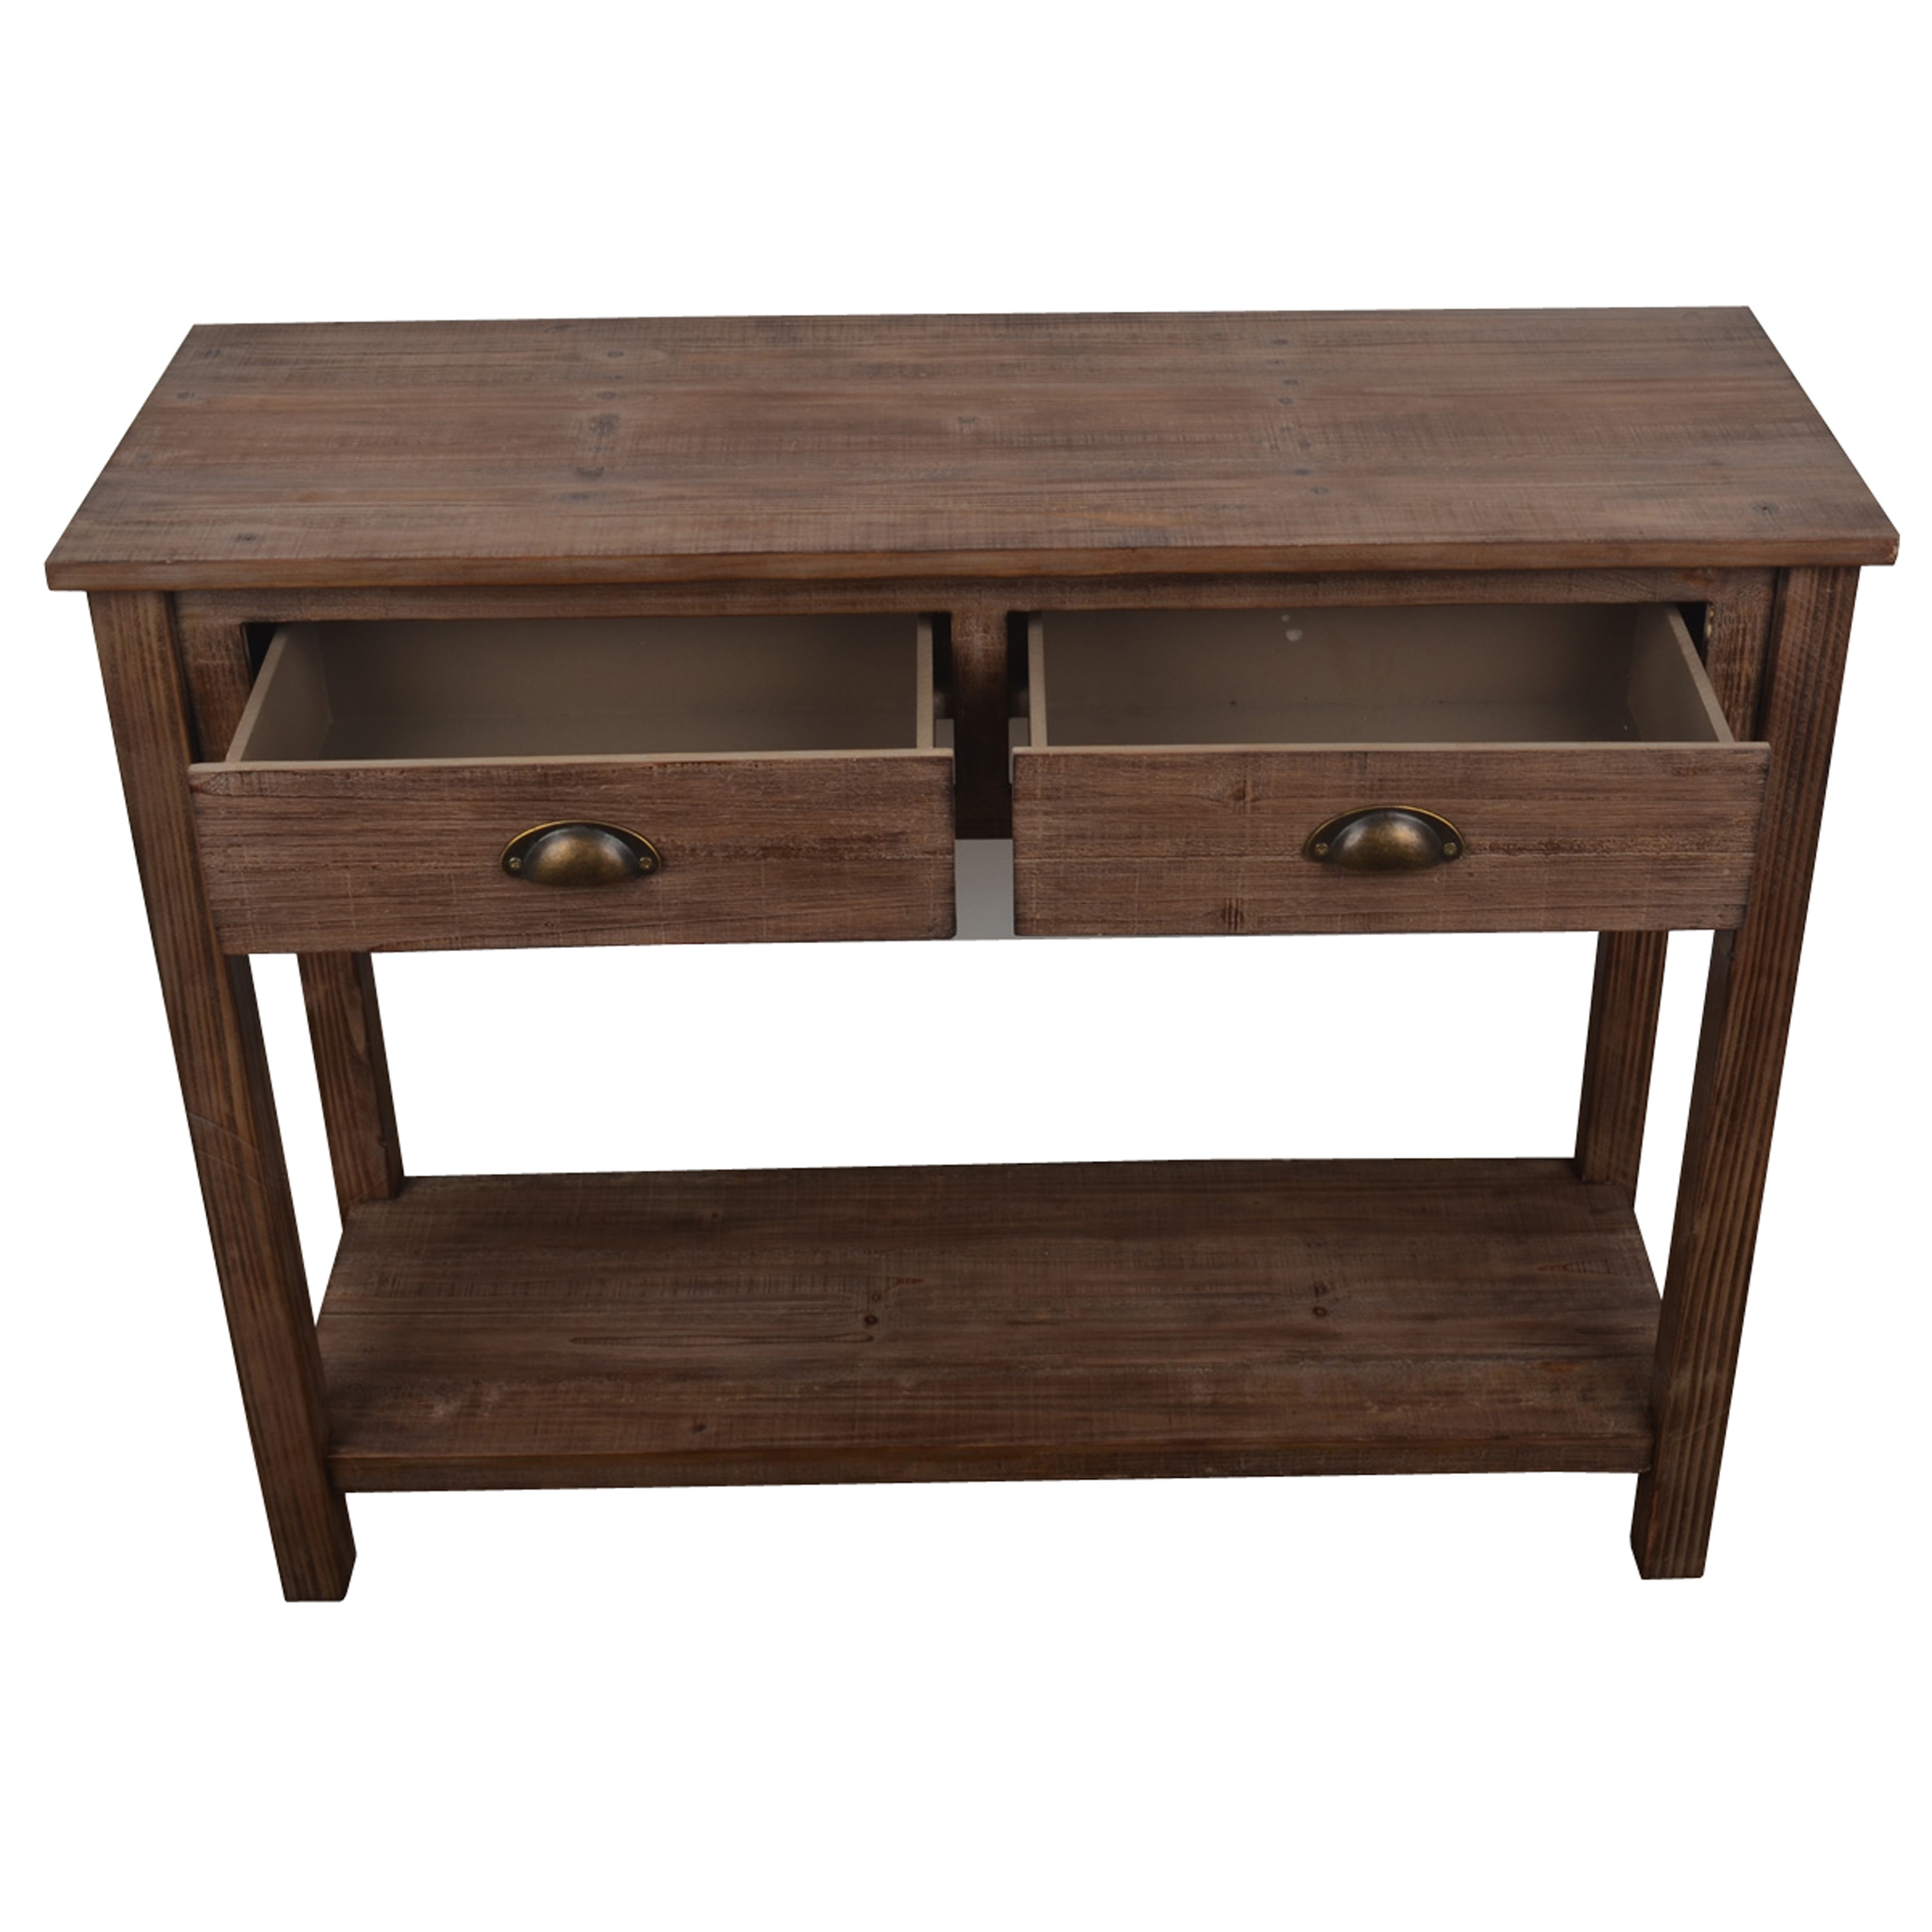 Decor Therapy Vintage Distressed Brown Wood Console Table On Free Shipping Today 12899295